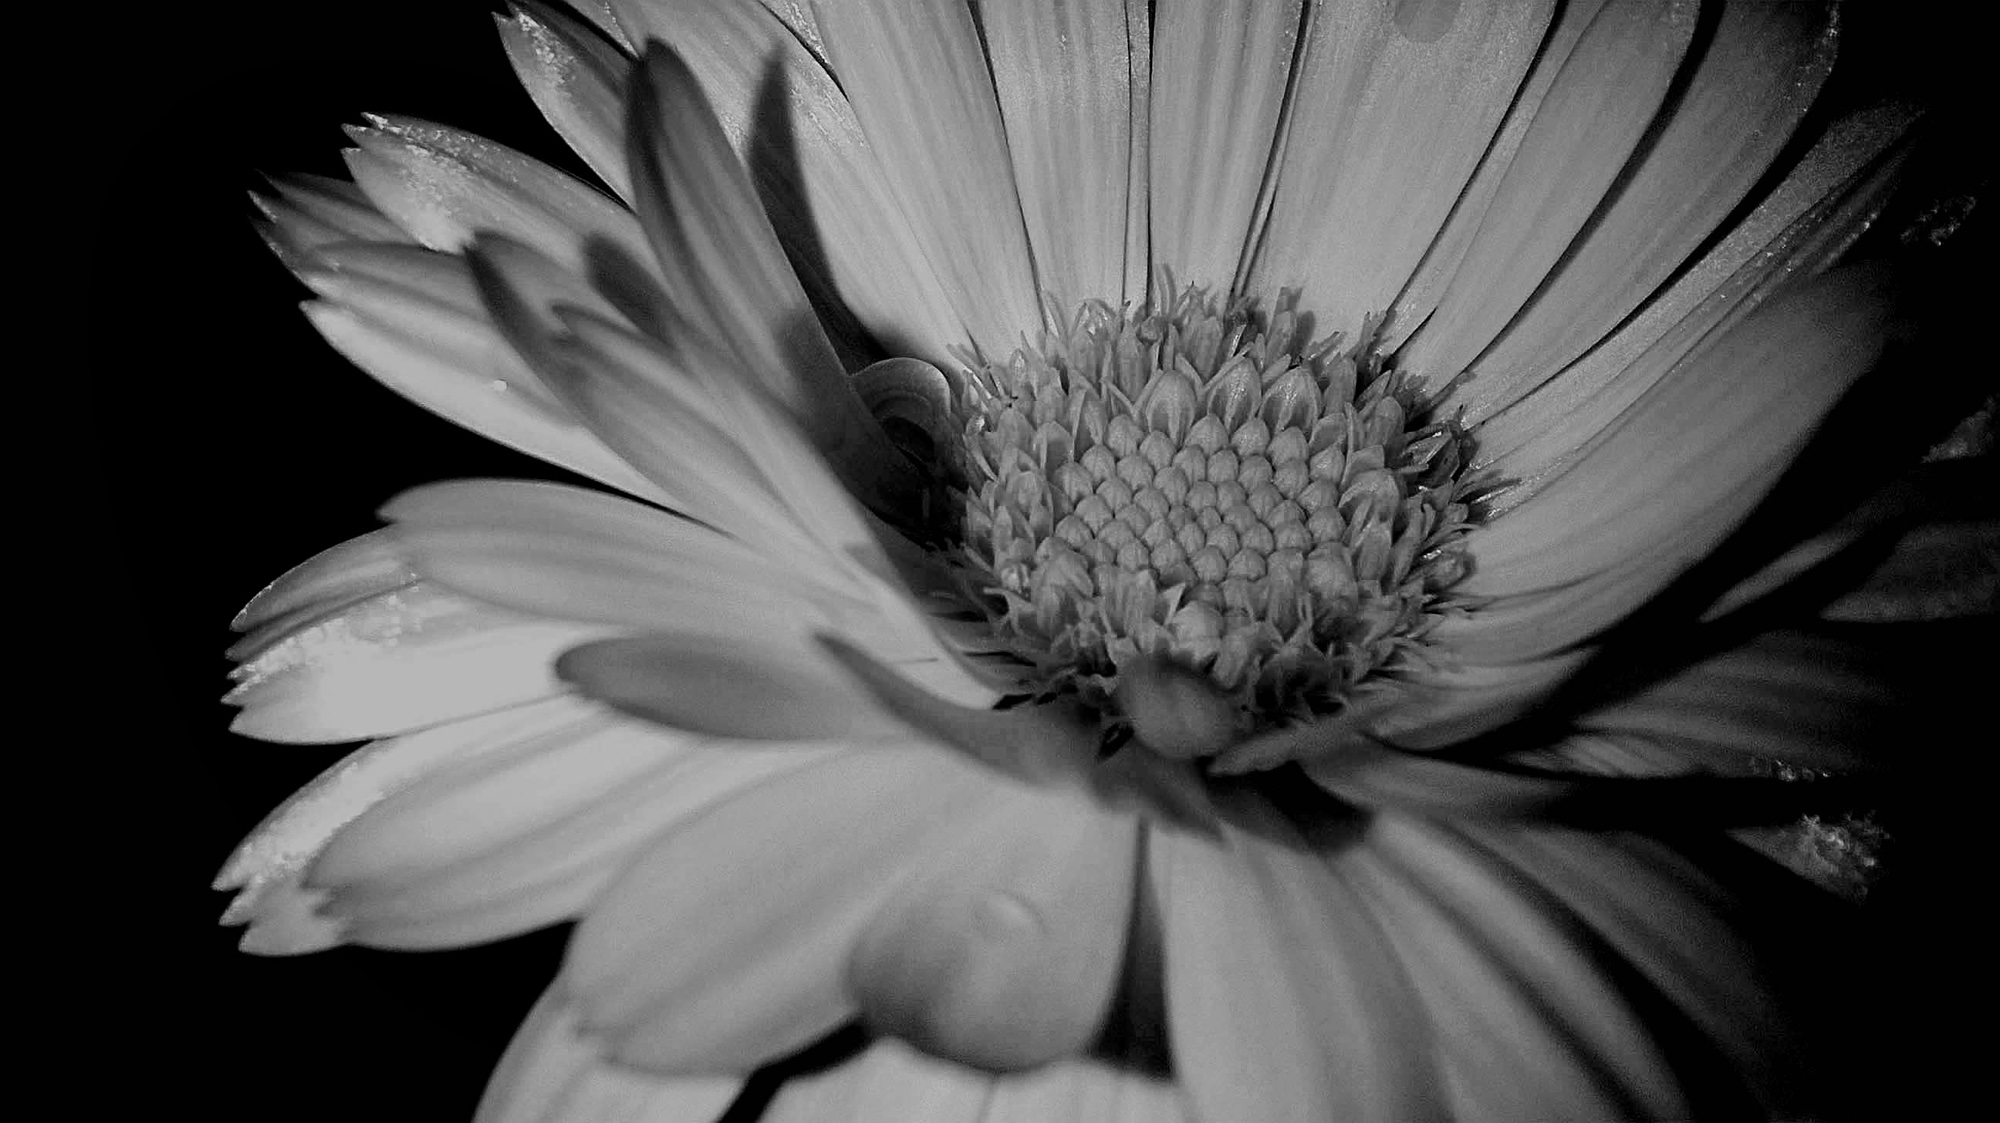 I tried to capture a white flower with black background to show contrast...